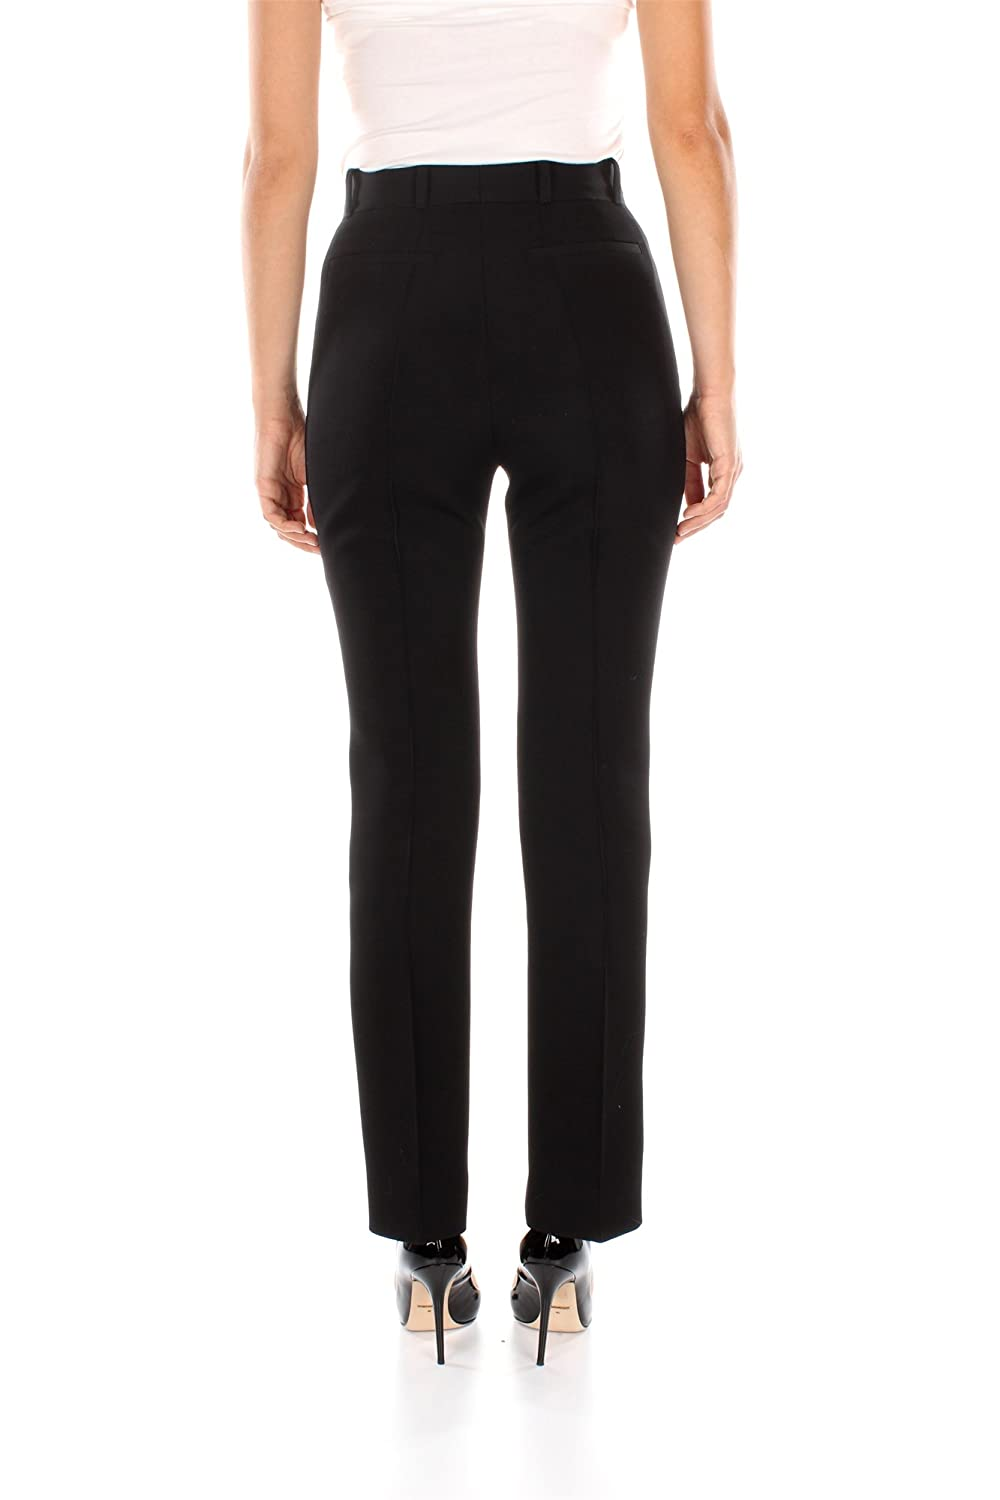 15I5461120001 Givenchy Pants Women Wool Black